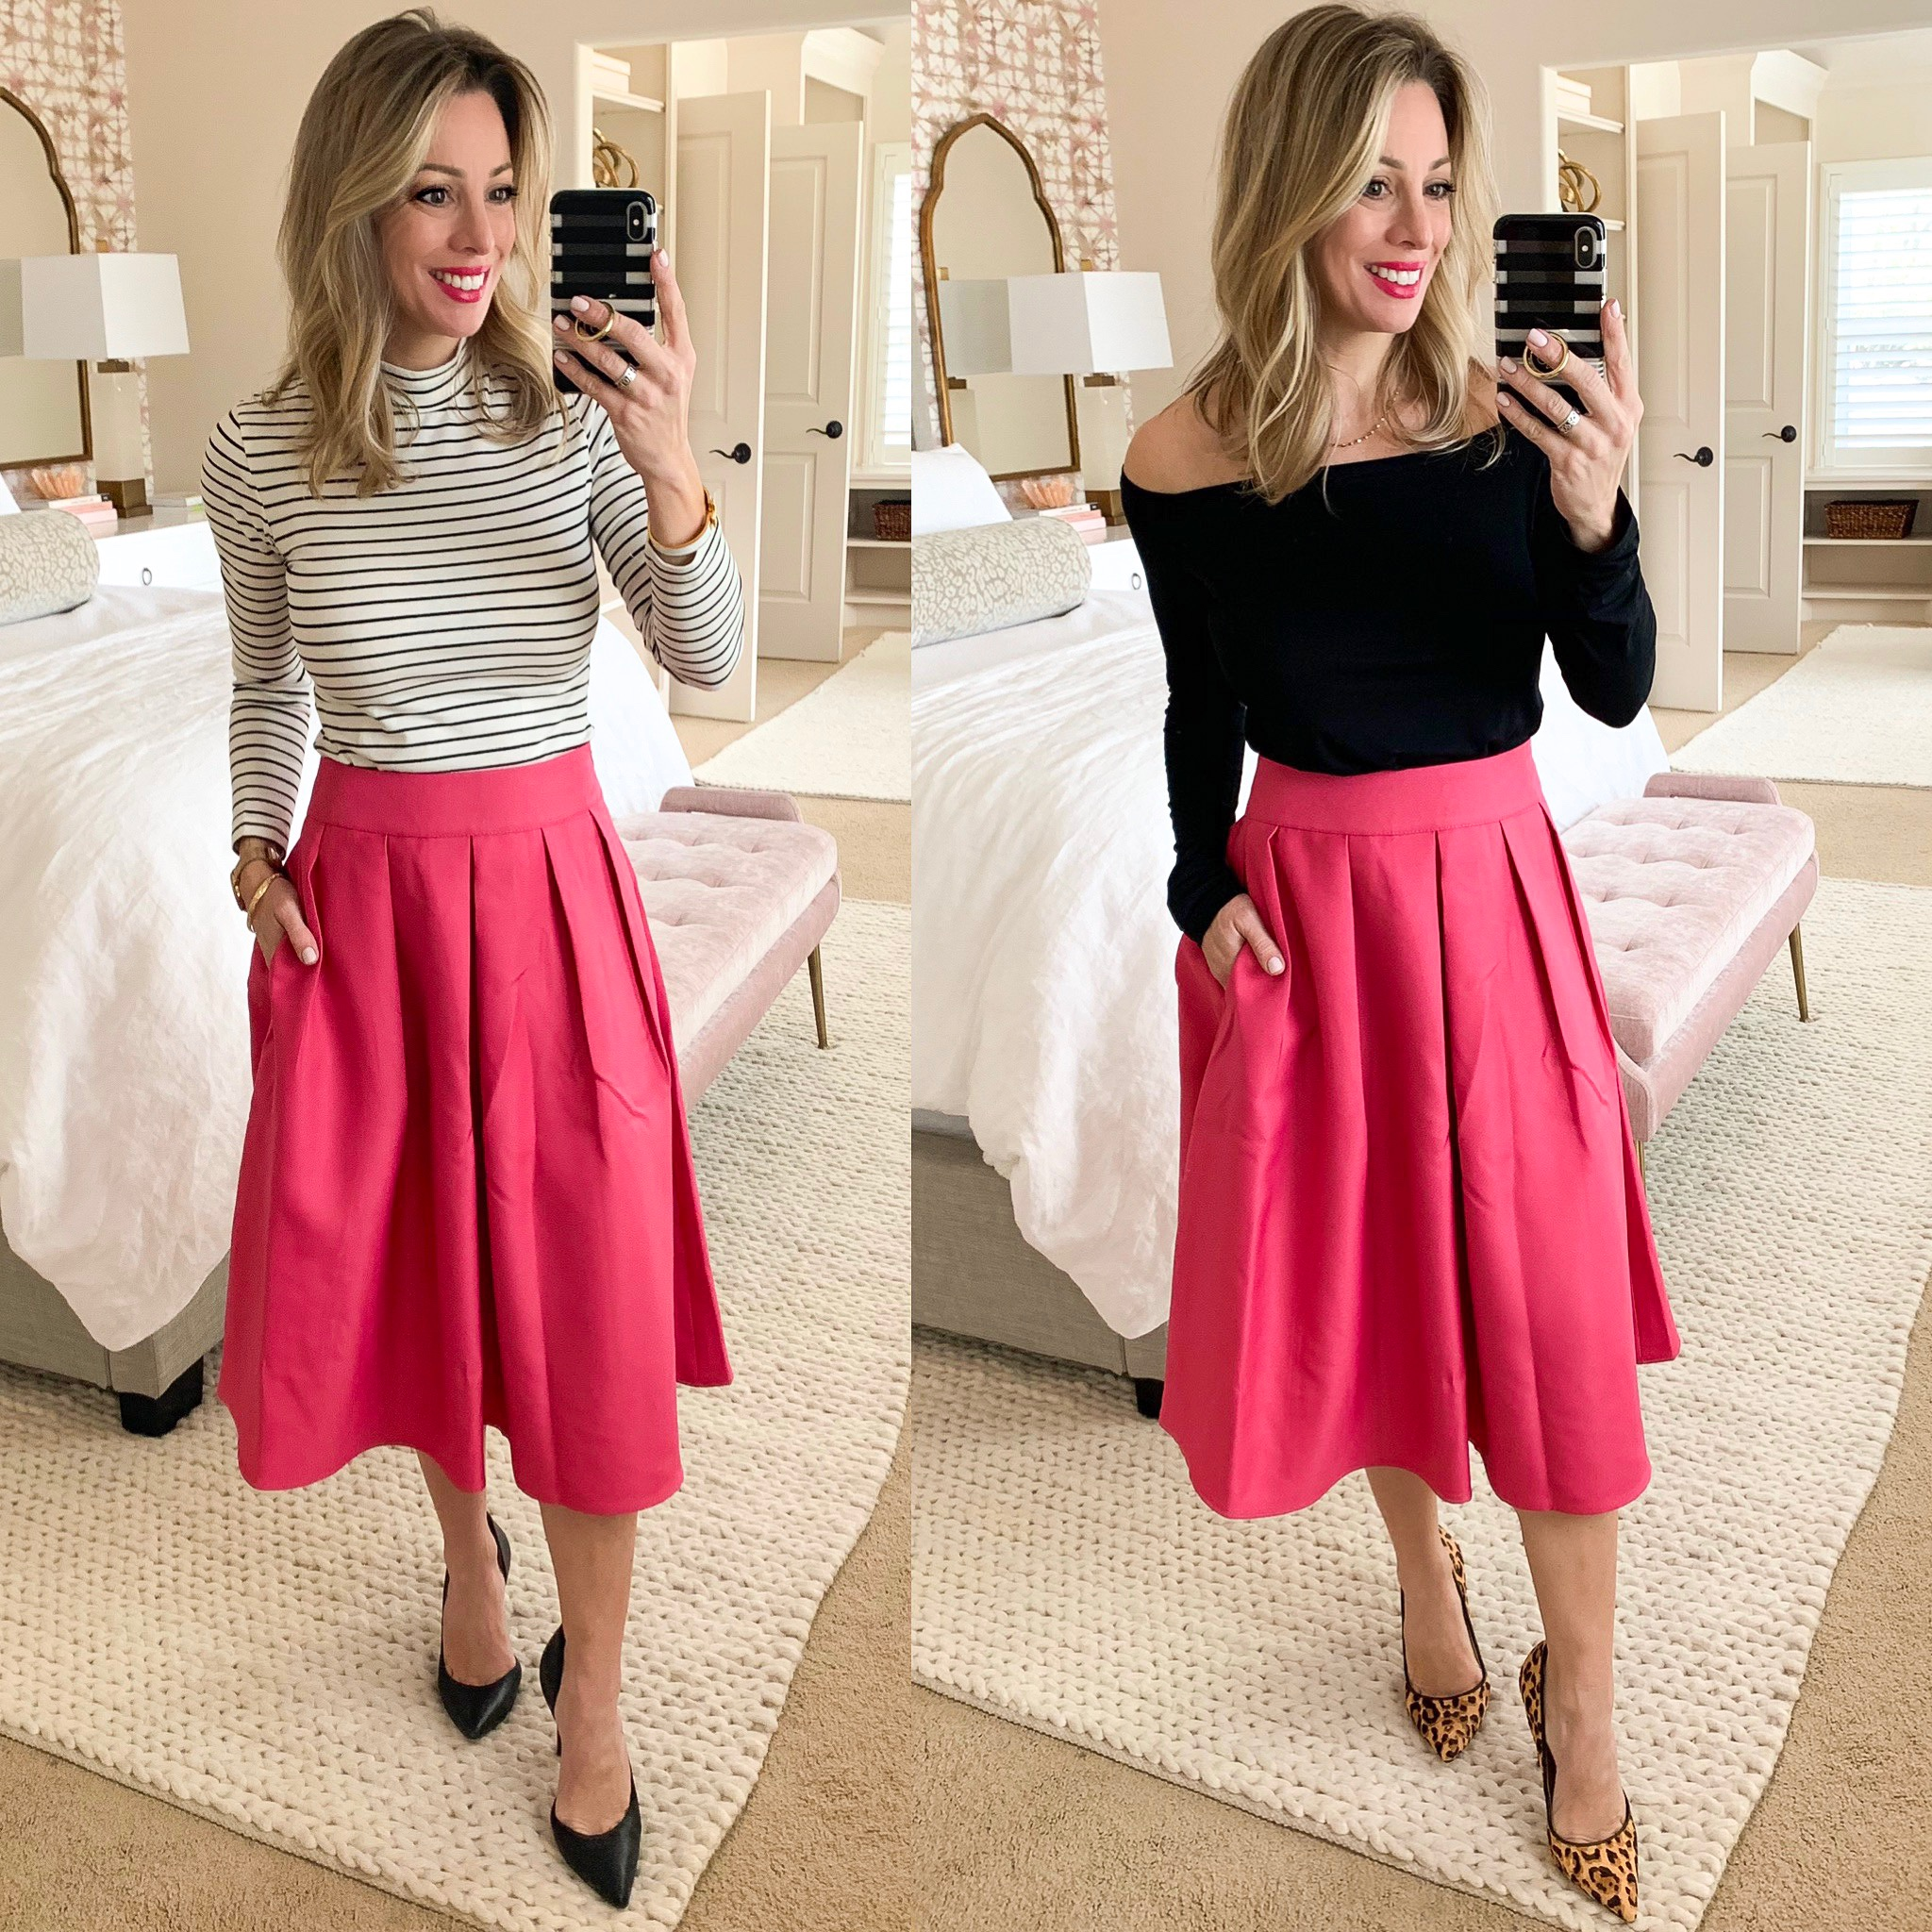 pink midi skirt styled two ways